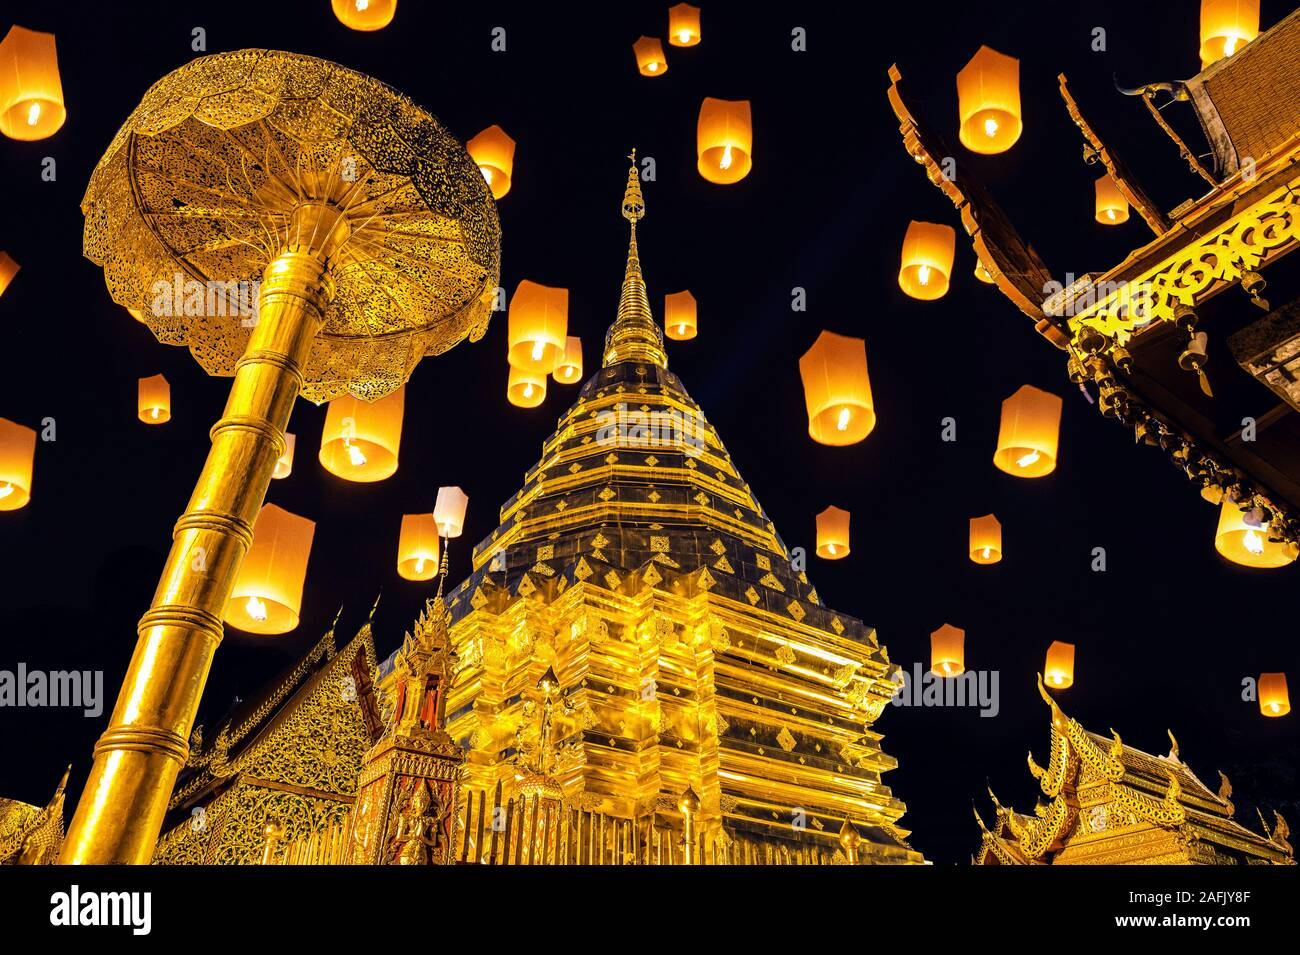 Yee peng festival and sky lanterns at Wat Phra That Doi Suthep in Chiang Mai, Thailand. Stock Photo